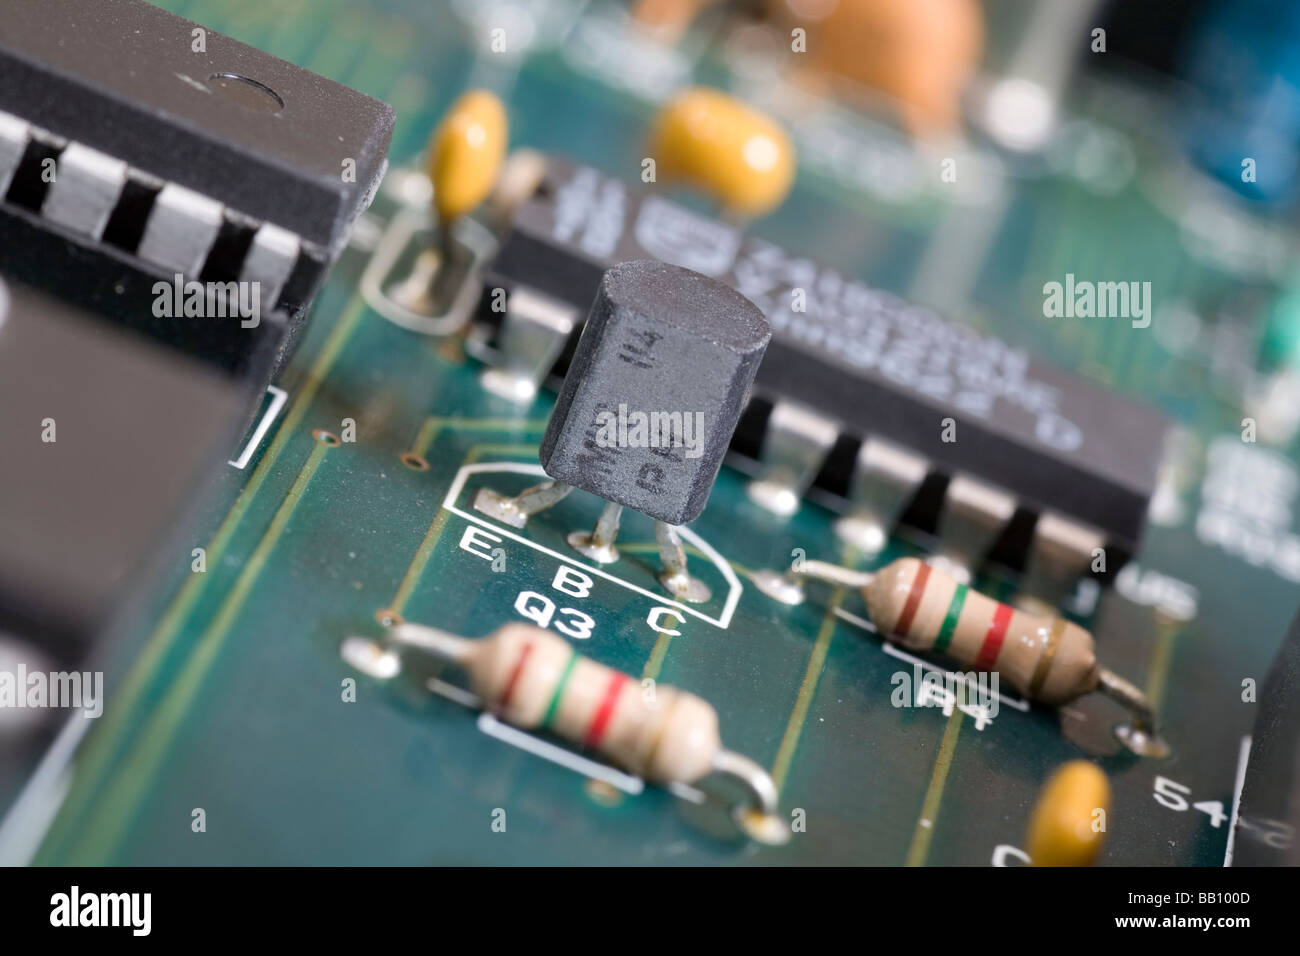 Transistor On An Electronic Circuit Board Stock Photo 23993549 Alamy Use Of In A